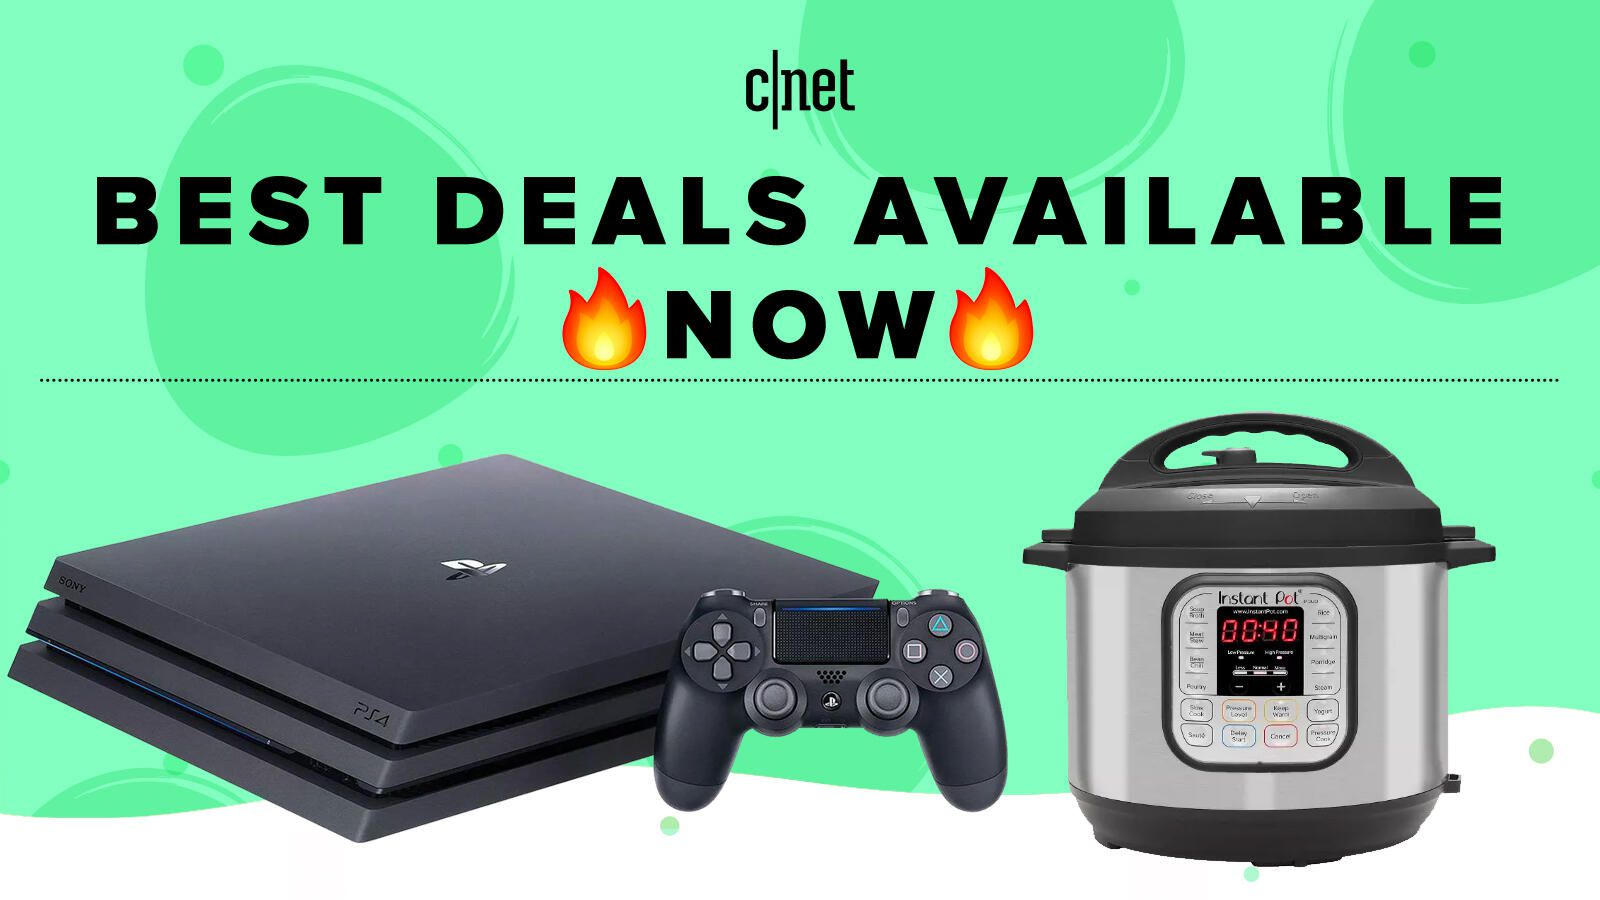 Tech News: Black Friday 2019 deals: $250 iPad, $149 Fitbit Versa and save $150 on Xbox One X bundle – CNET